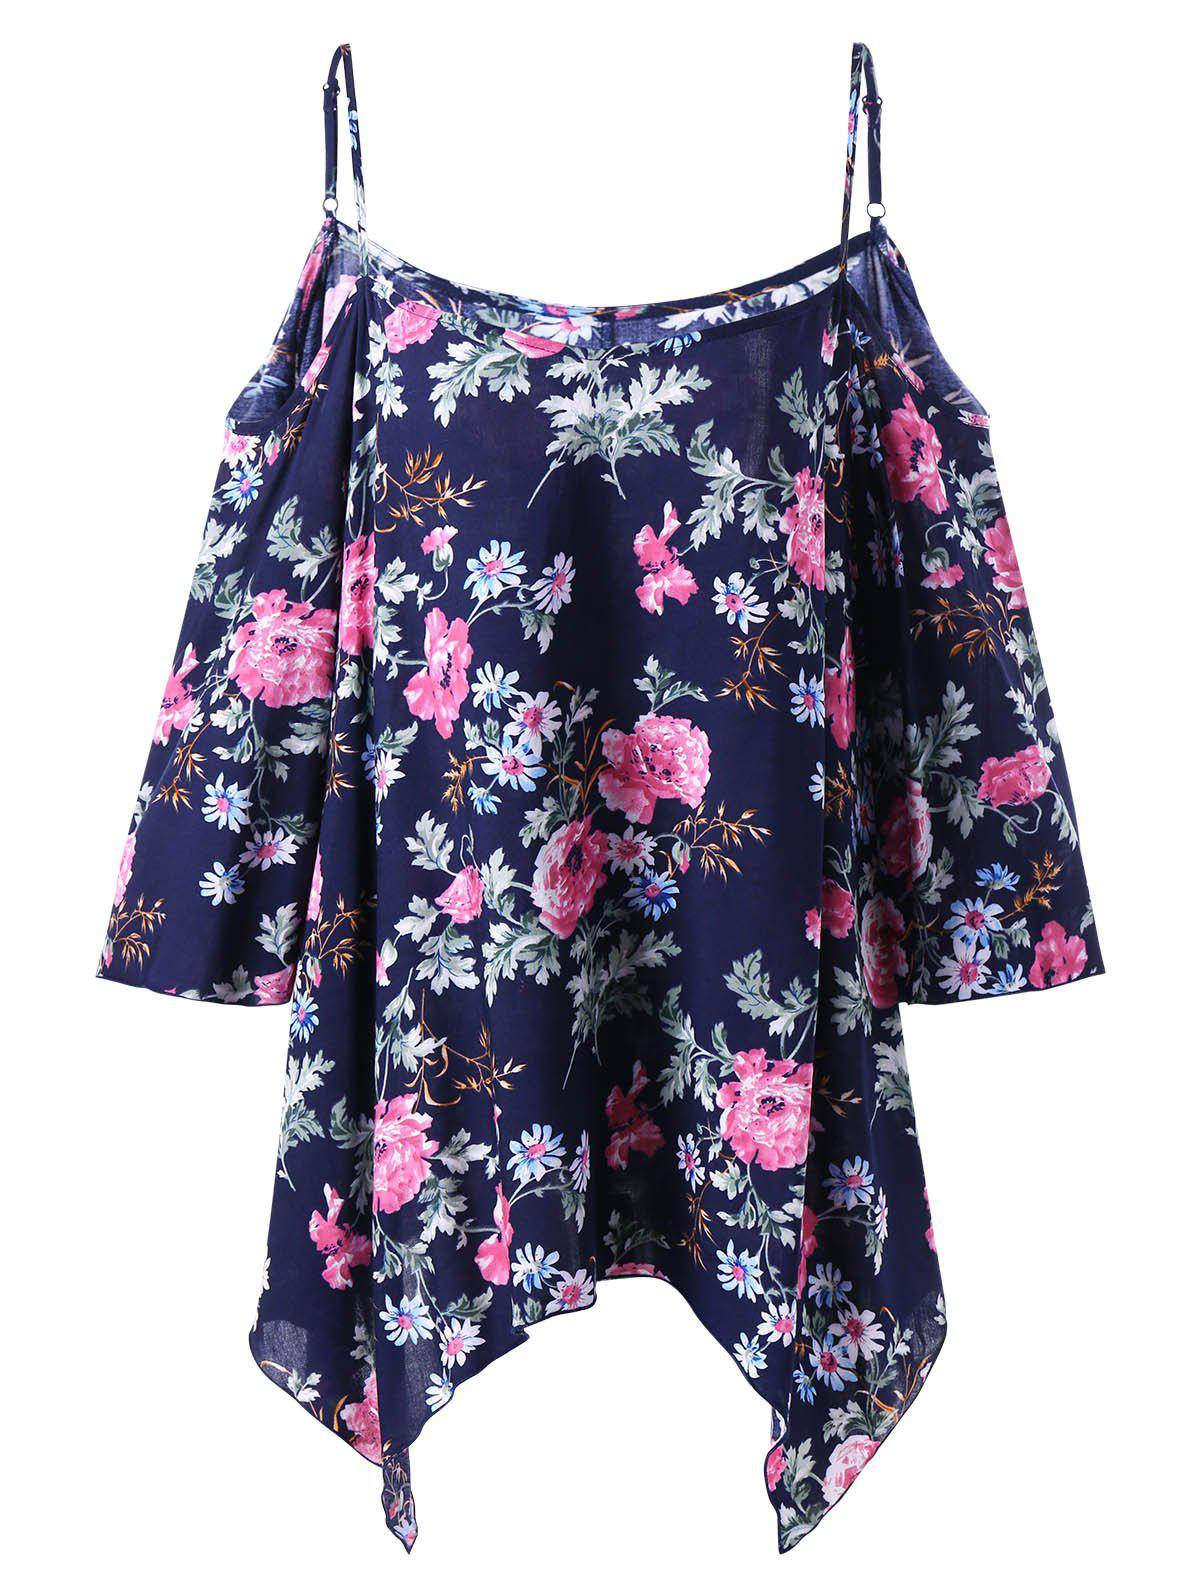 Plus Size Dew Shoulder Floral Handkerchief BlouseWOMEN<br><br>Size: XL; Color: DEEP BLUE; Material: Rayon; Shirt Length: Regular; Sleeve Length: Three Quarter; Collar: Spaghetti Strap; Style: Casual; Season: Fall,Spring,Summer; Pattern Type: Floral; Weight: 0.1700kg; Package Contents: 1 x Blouse;